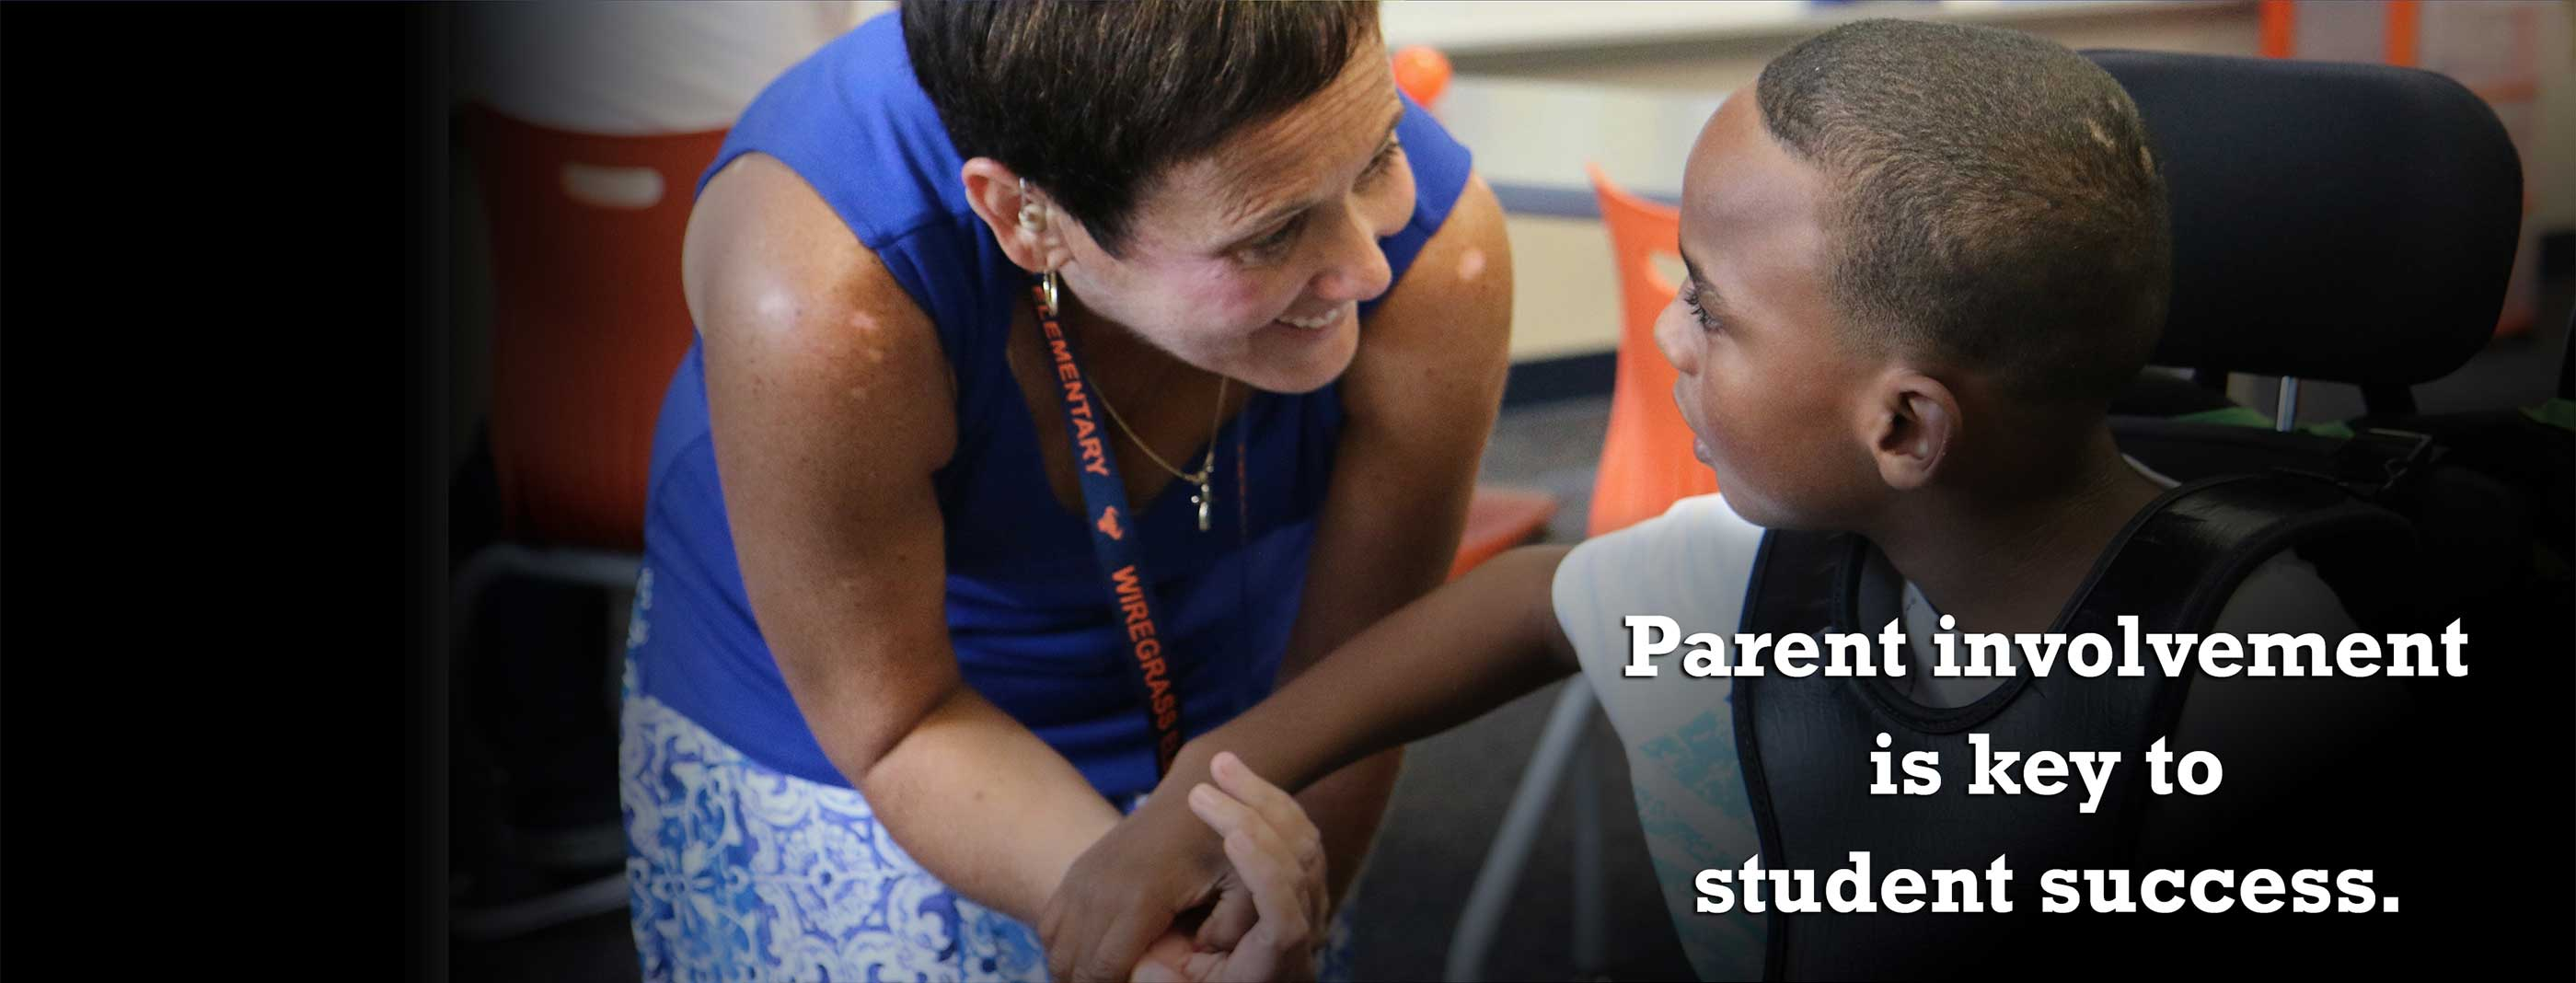 Parent involvement is key to student success.